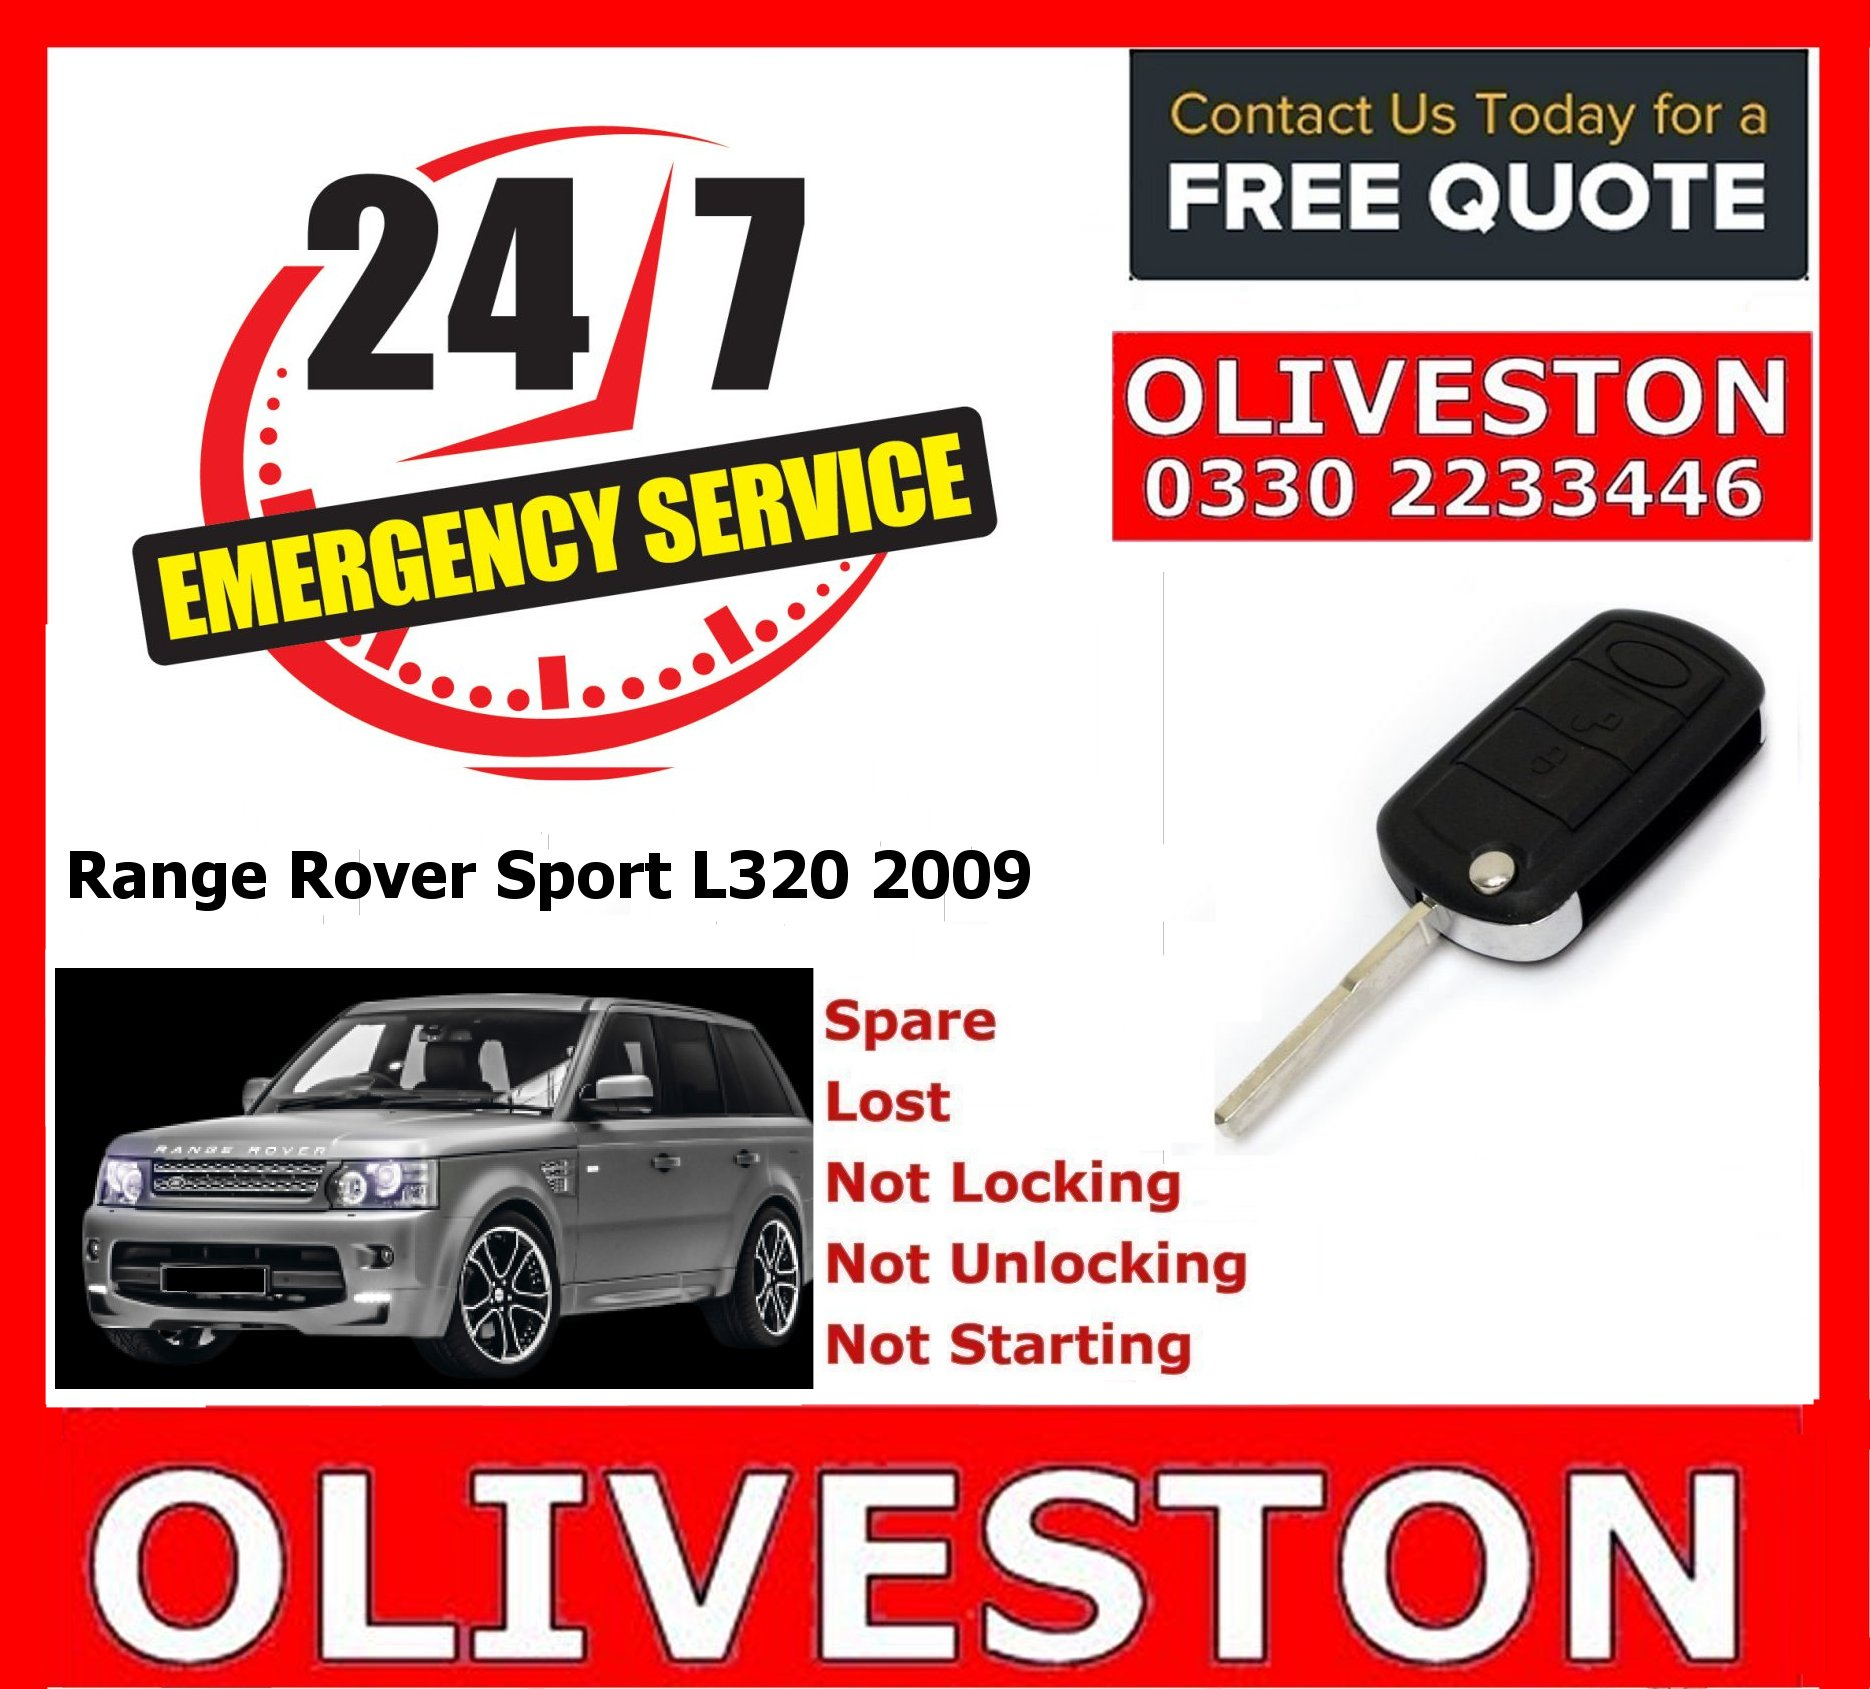 Land_Rover_Rover_2009_Keyless_Key-fob-replacement_repair_lost_programming_sdd-_l5hi-ub.jpg (1870×1689)